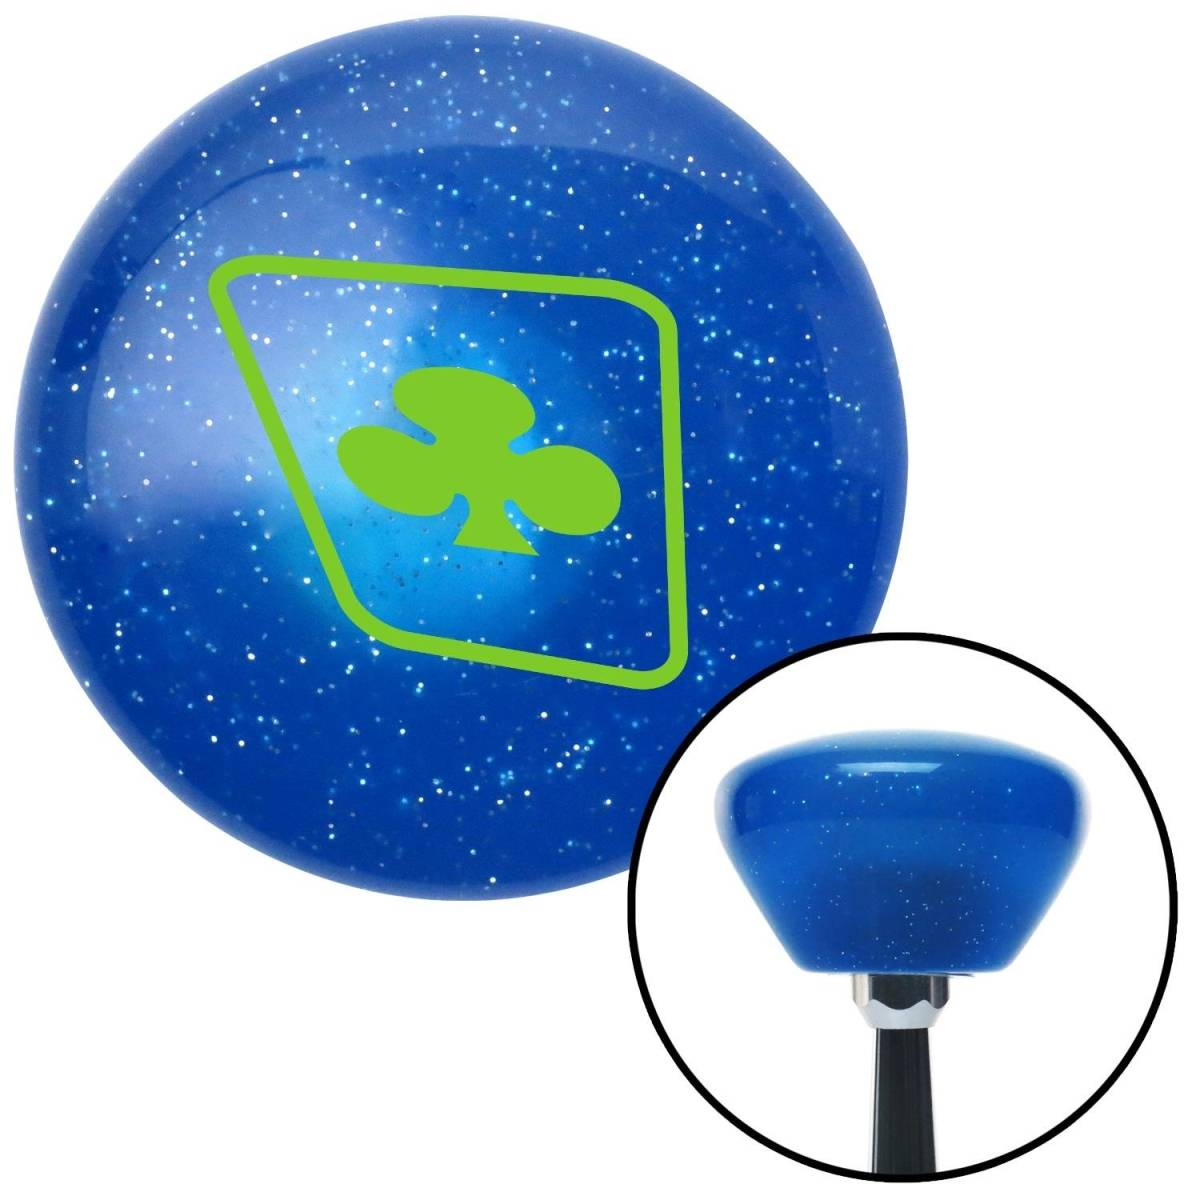 American Shifter Company American Shifter 185351 Green Clubs on a Card Blue Retro Metal Flake Shift Knob with M16 x 1.5 Insert Auto Brody